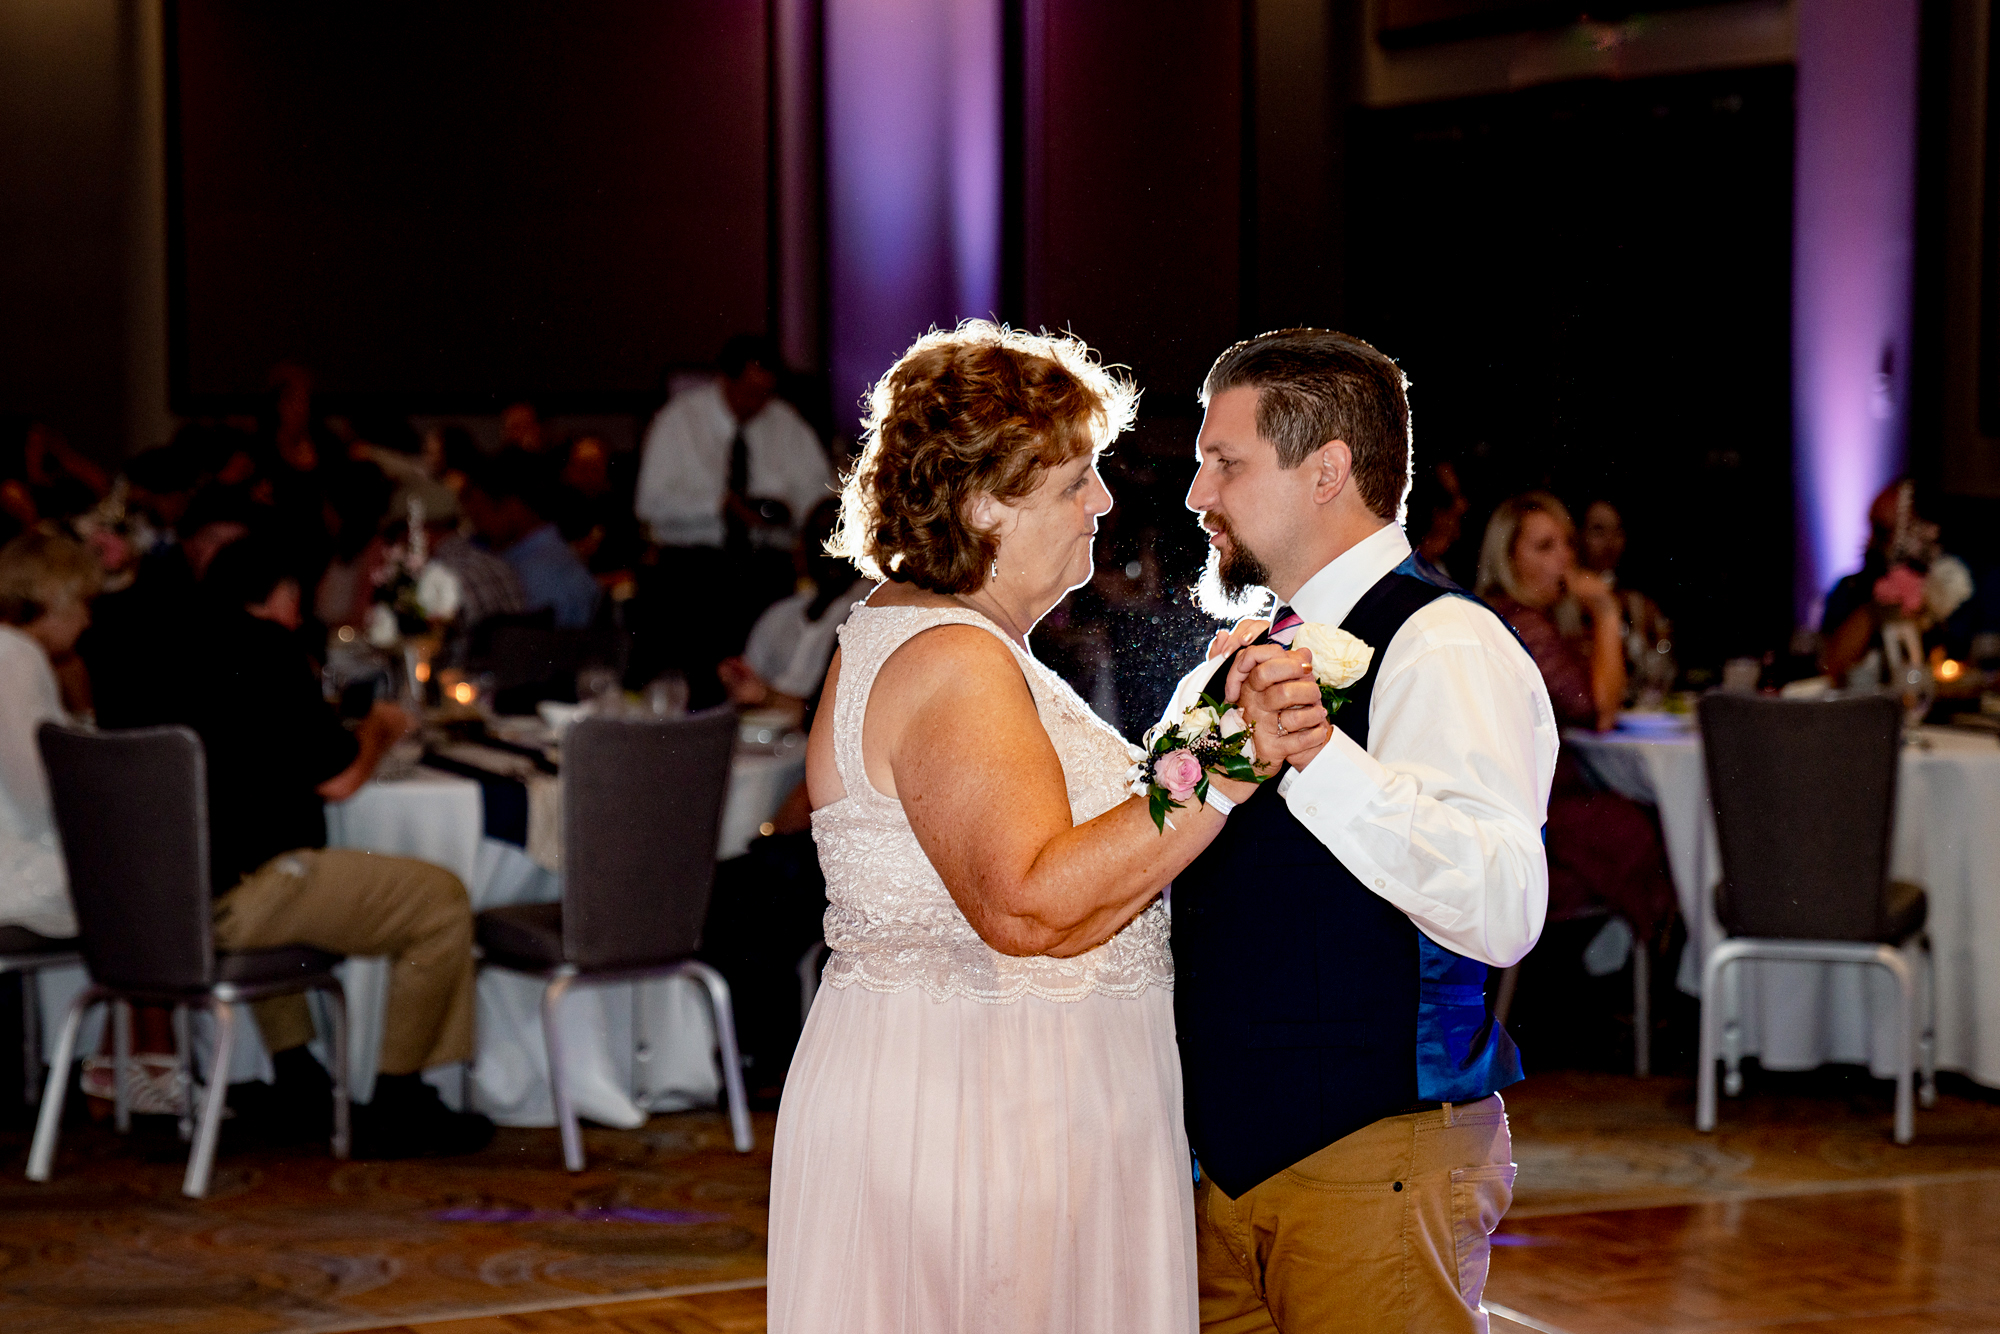 Lawrenceburg-Event-Center-Cincinnati-Wedding-Photographers-26.jpg